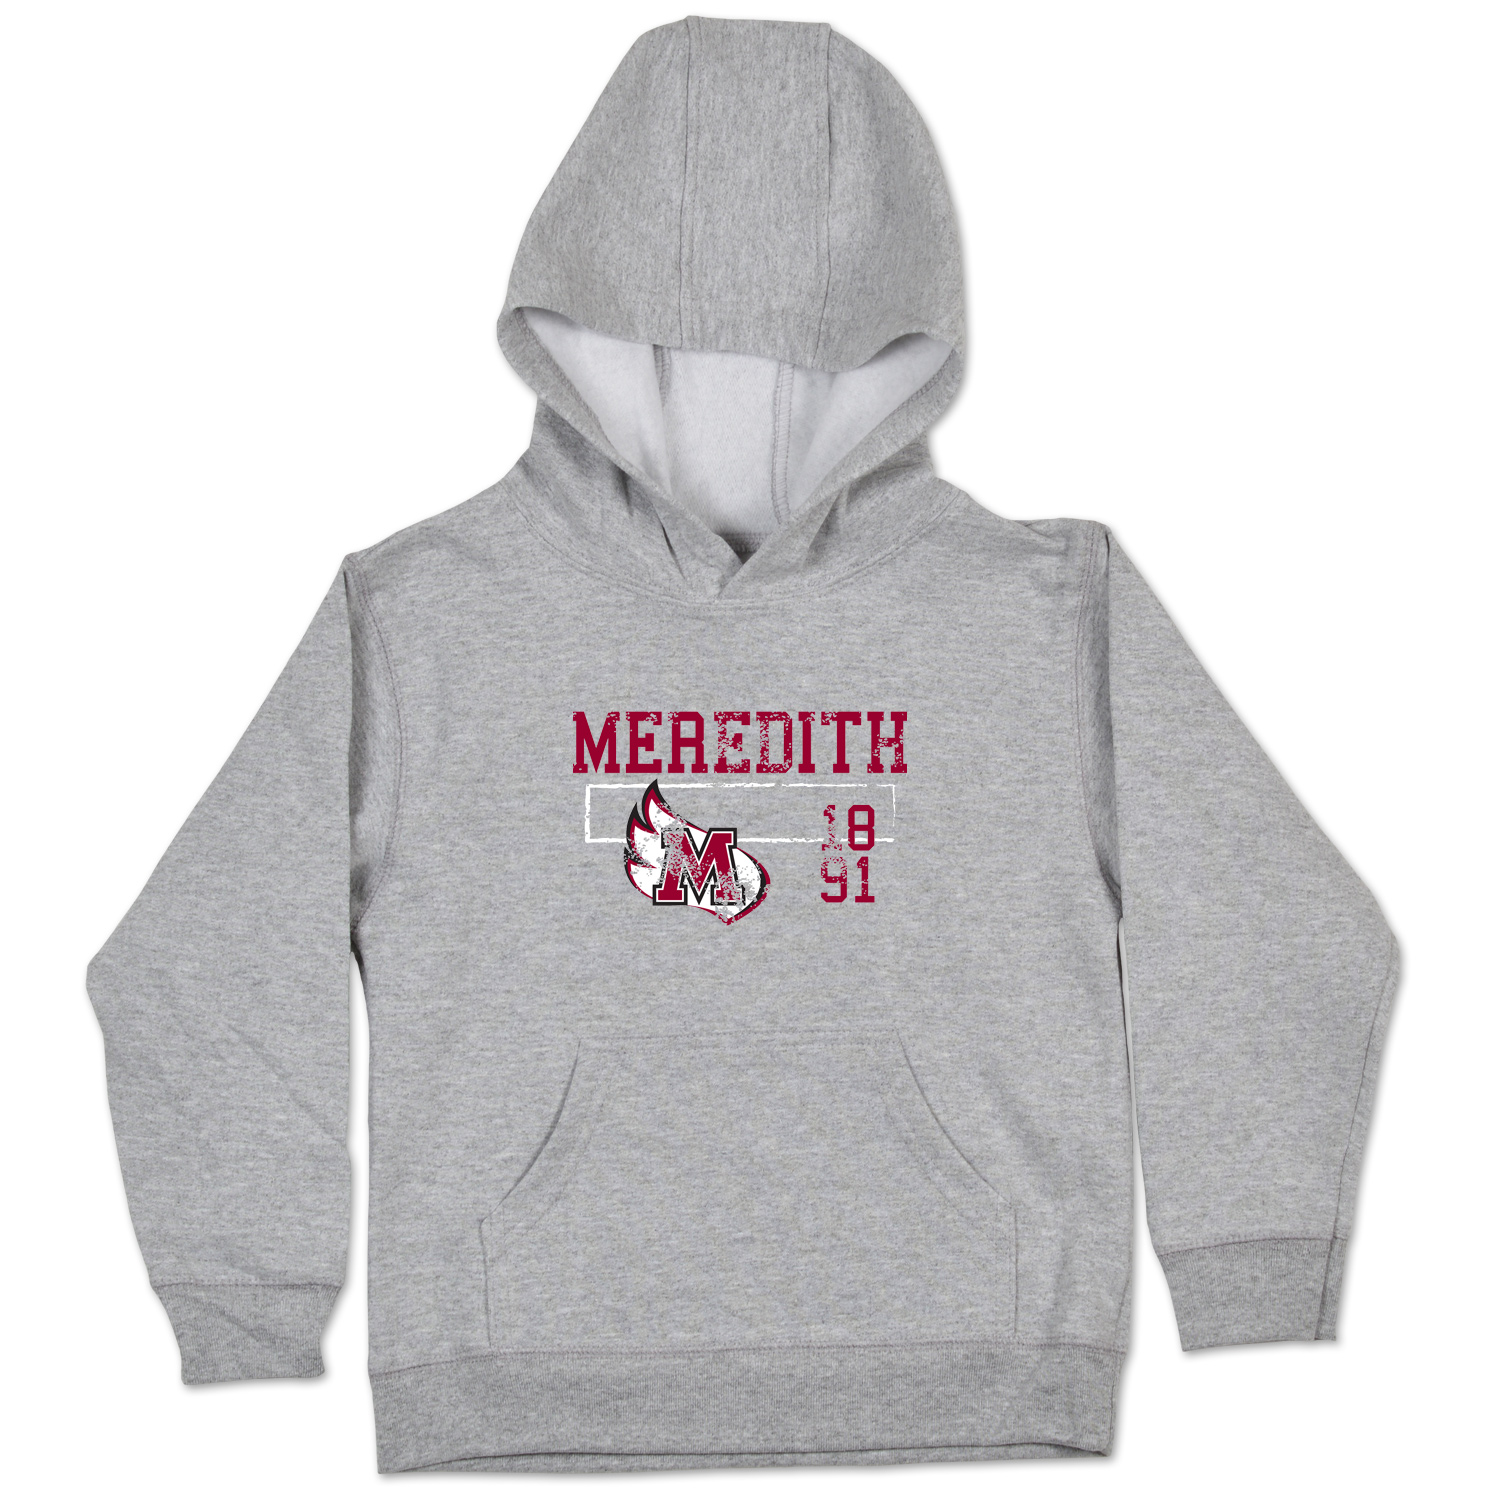 Image for the Toddler Hoodie Meredith w/wing & est. date product